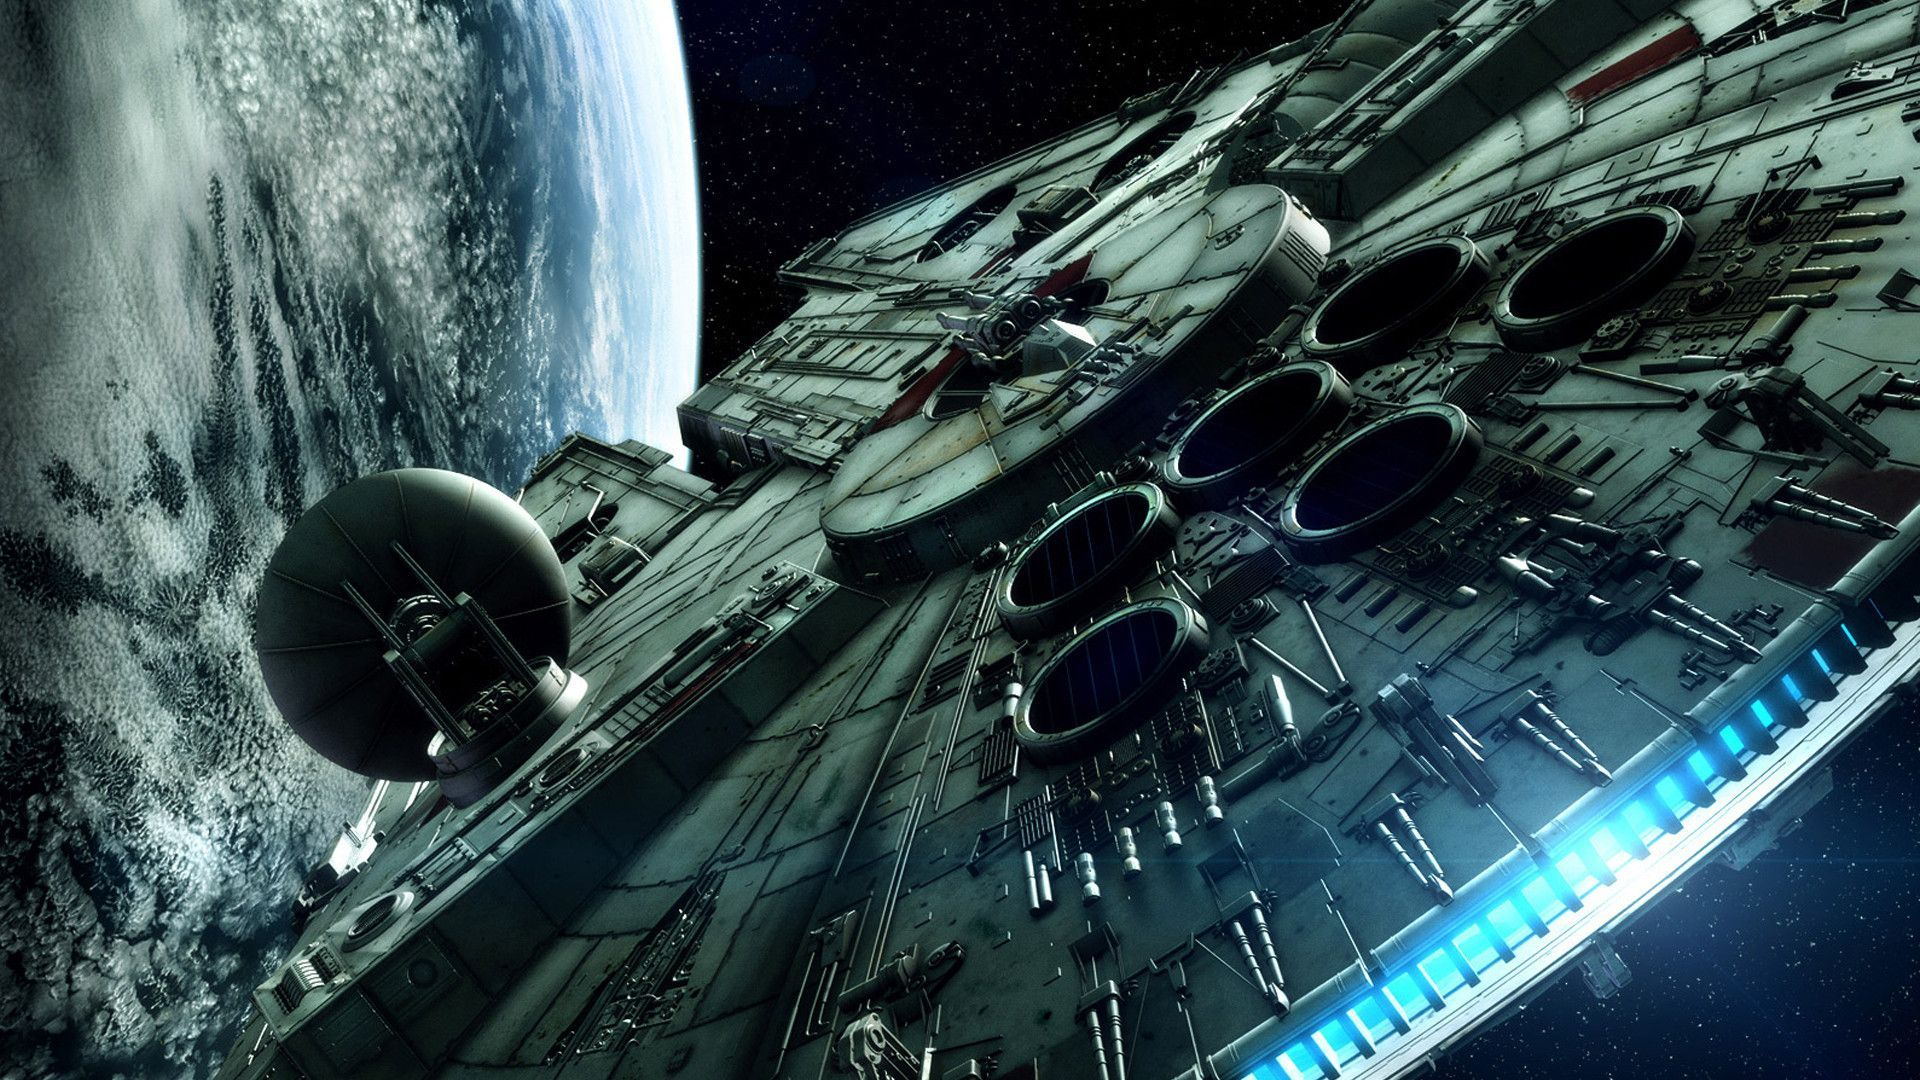 Star Wars HD Wallpapers 1920x1080